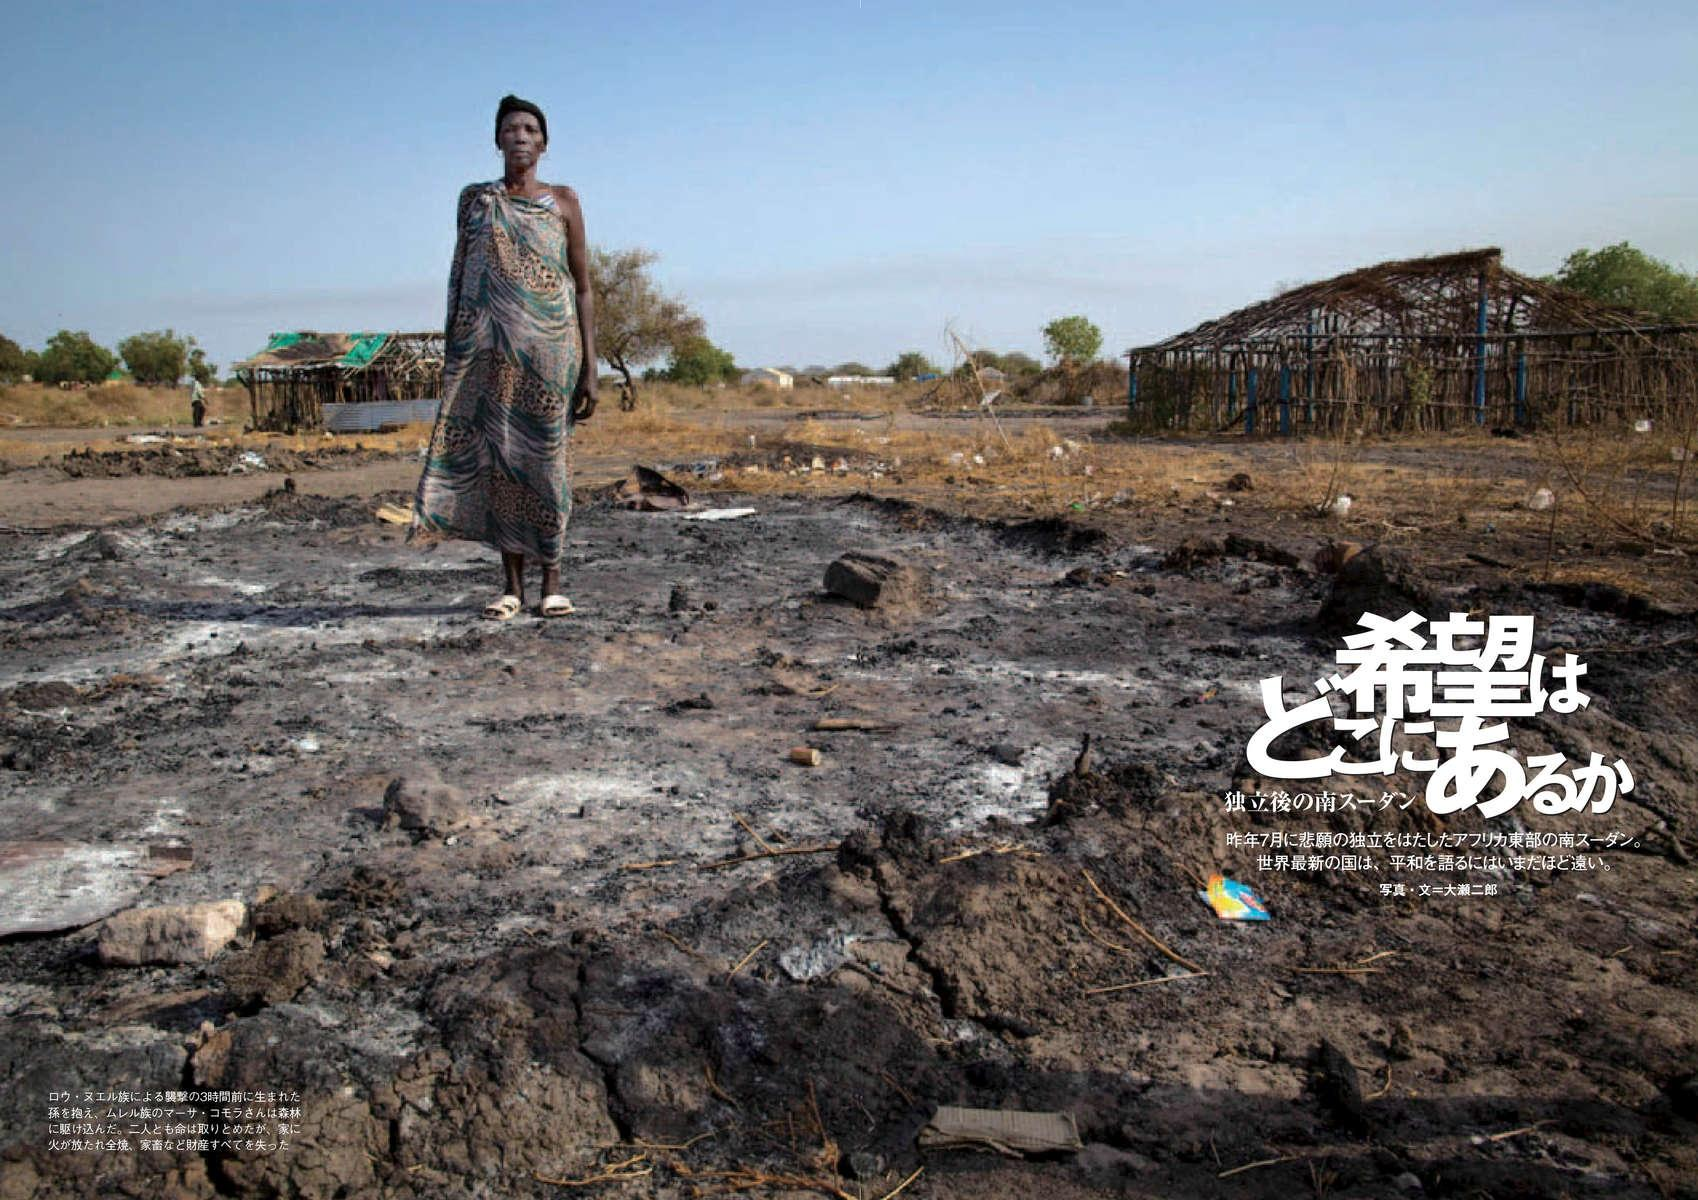 Weekly Asahi, Violence in South Sudan